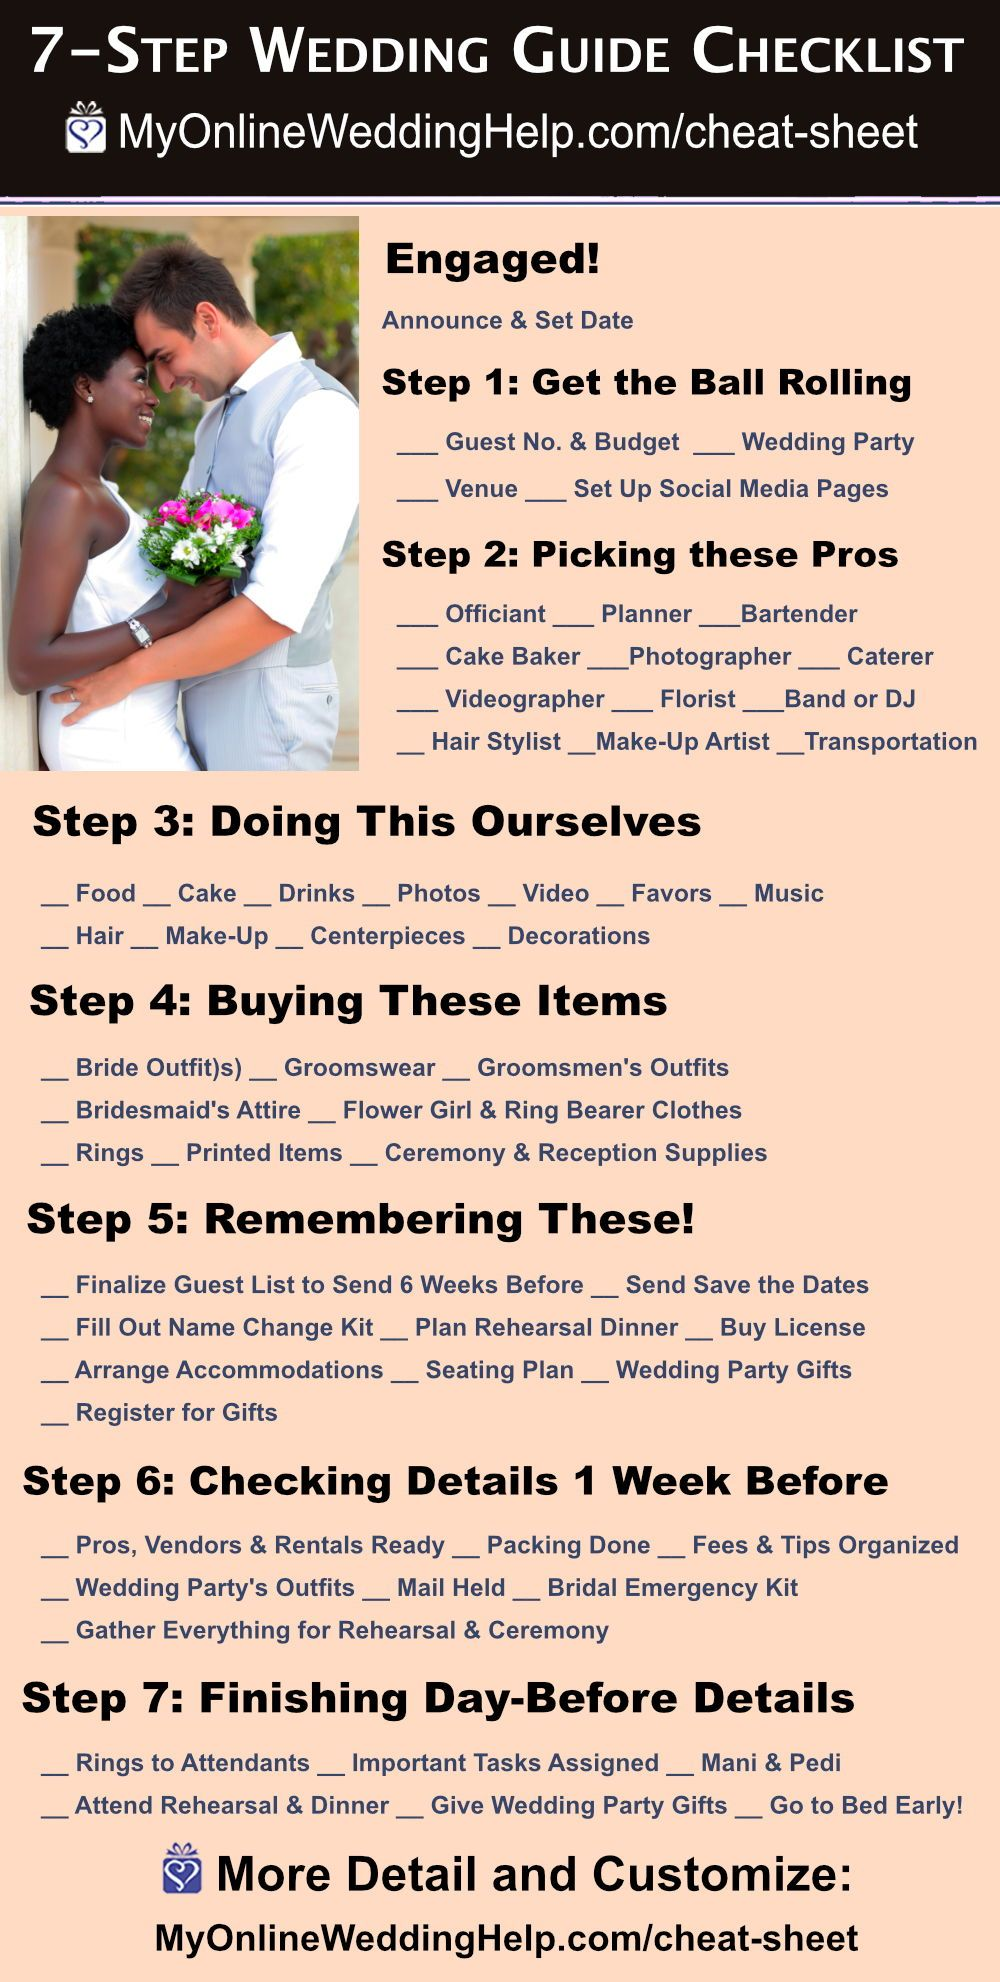 7 Step Wedding Guide Checklist And Printable Cheat Sheet Wedding Guide Checklist Simple Wedding Planning Checklist Wedding Guide